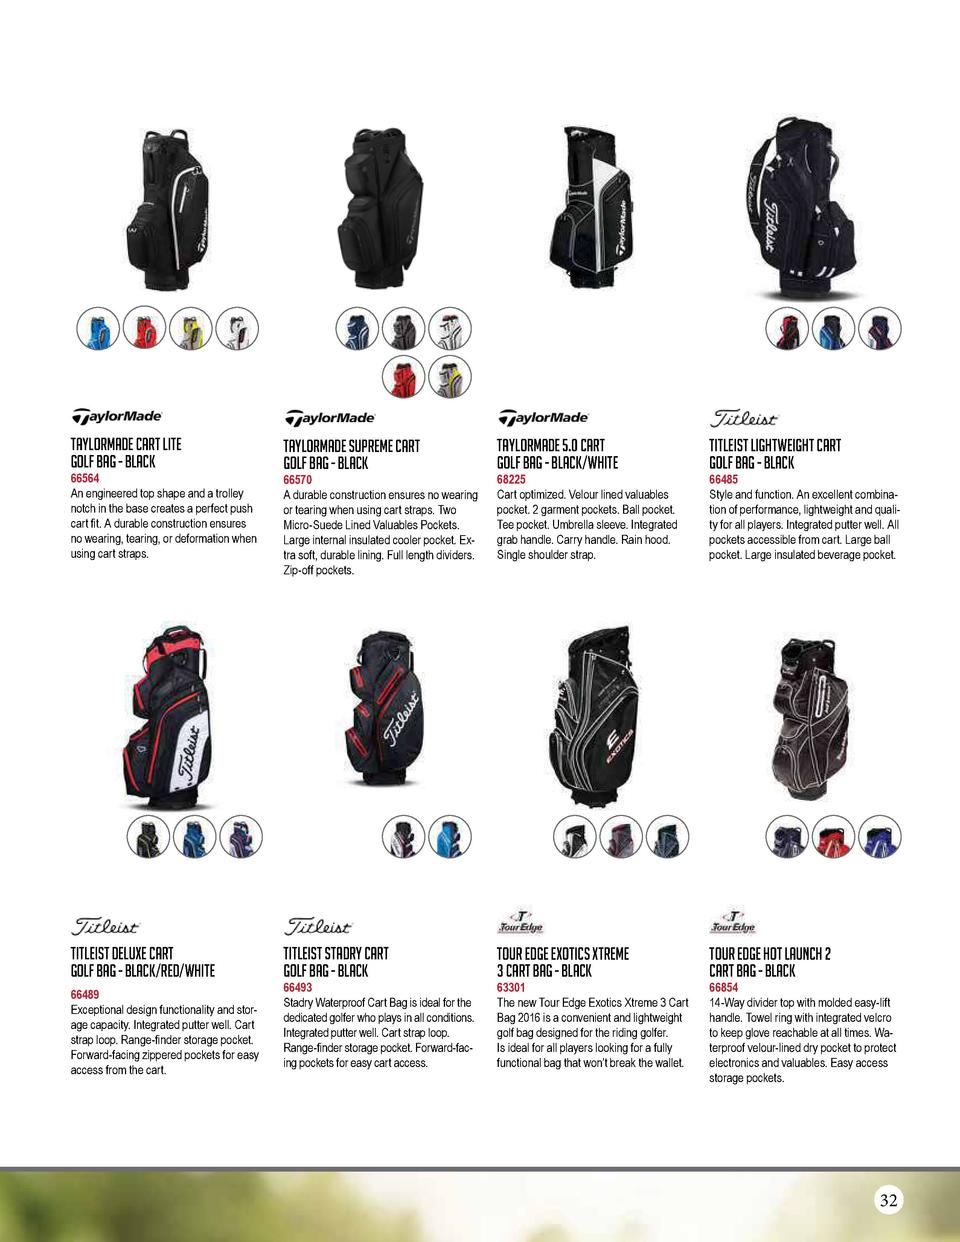 TaylorMade Cart Lite Golf Bag - Black  TaylorMade Supreme Cart Golf Bag - Black  TaylorMade 5.0 Cart Golf Bag - Black Whit...